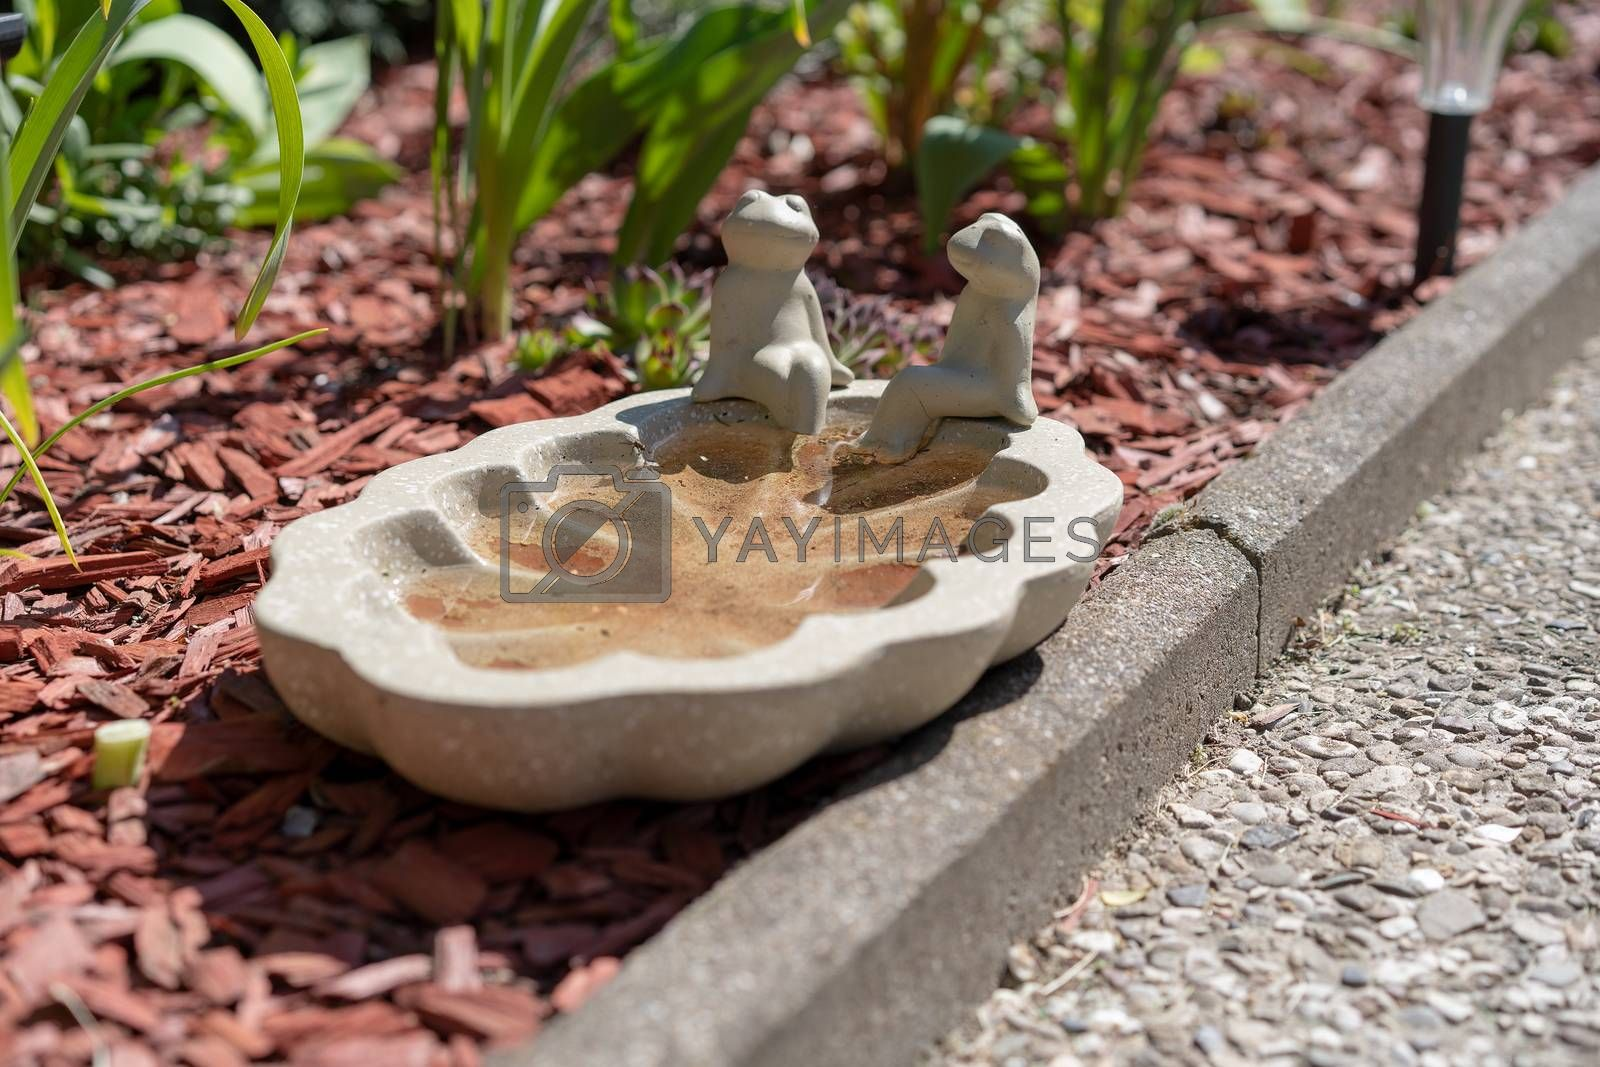 Two frog statues enjoy a sun bath on top of their own small pool serving as an insect and bird water reservoir in a garden besides walkway. This helps birds and insects to endure te heat of the summer and a drought.